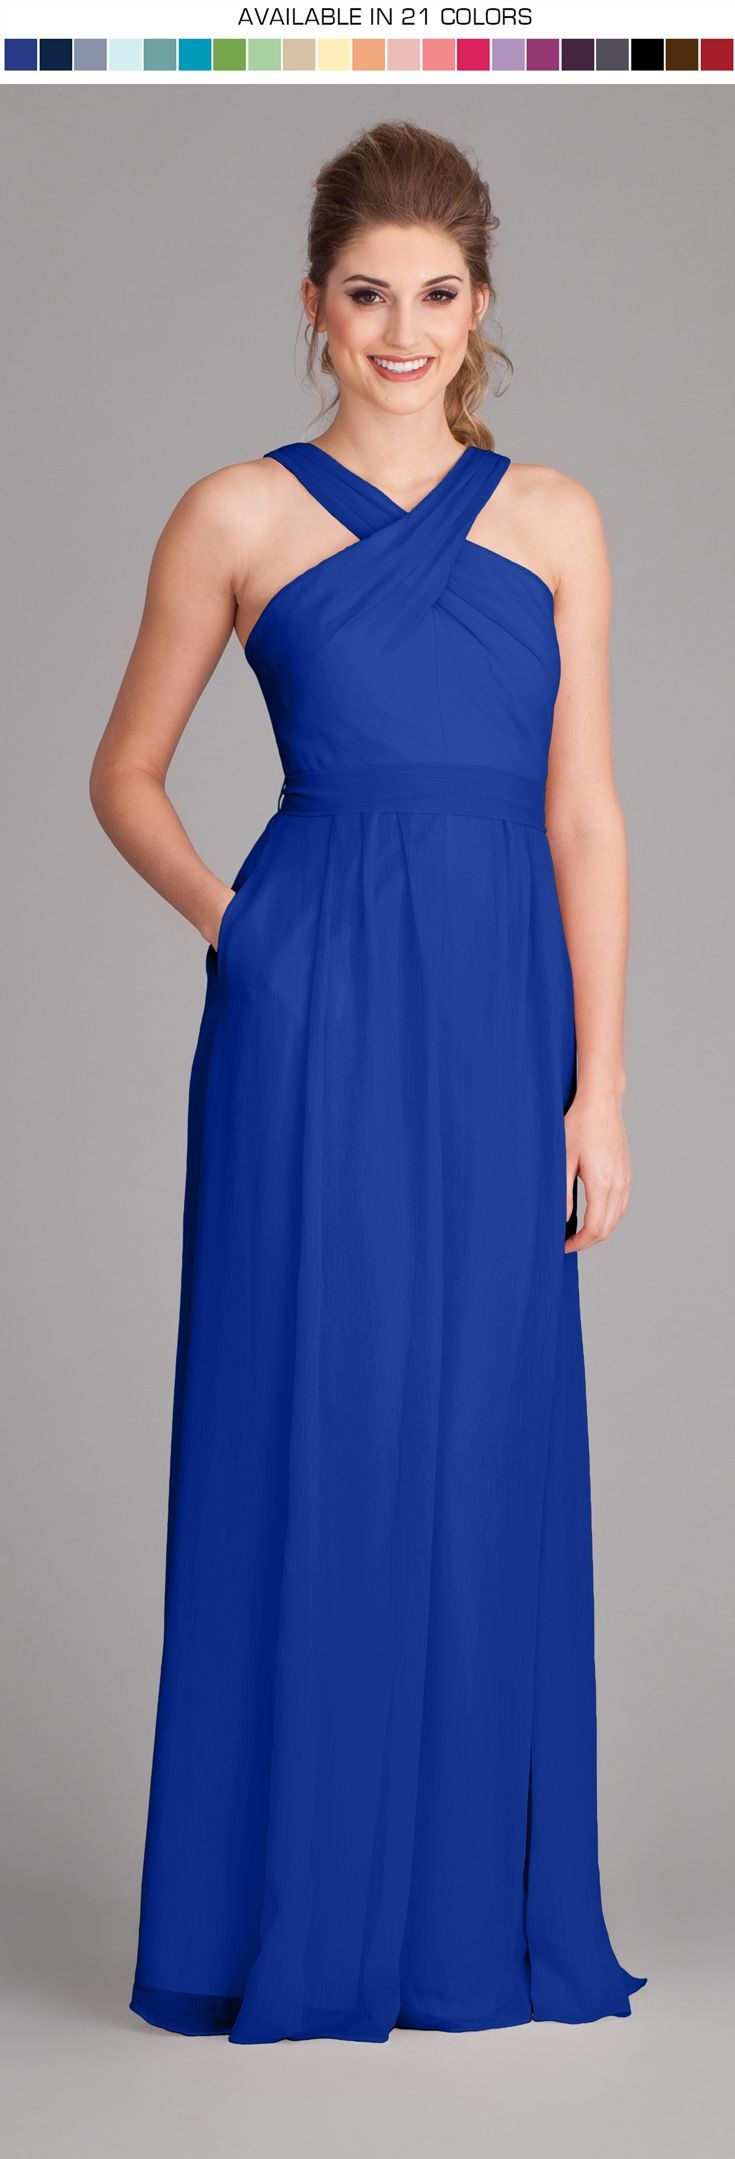 A gorgeous full-length bridesmaid dress with unique criss-cross straps. **Request your free swatch by emailing us today!**